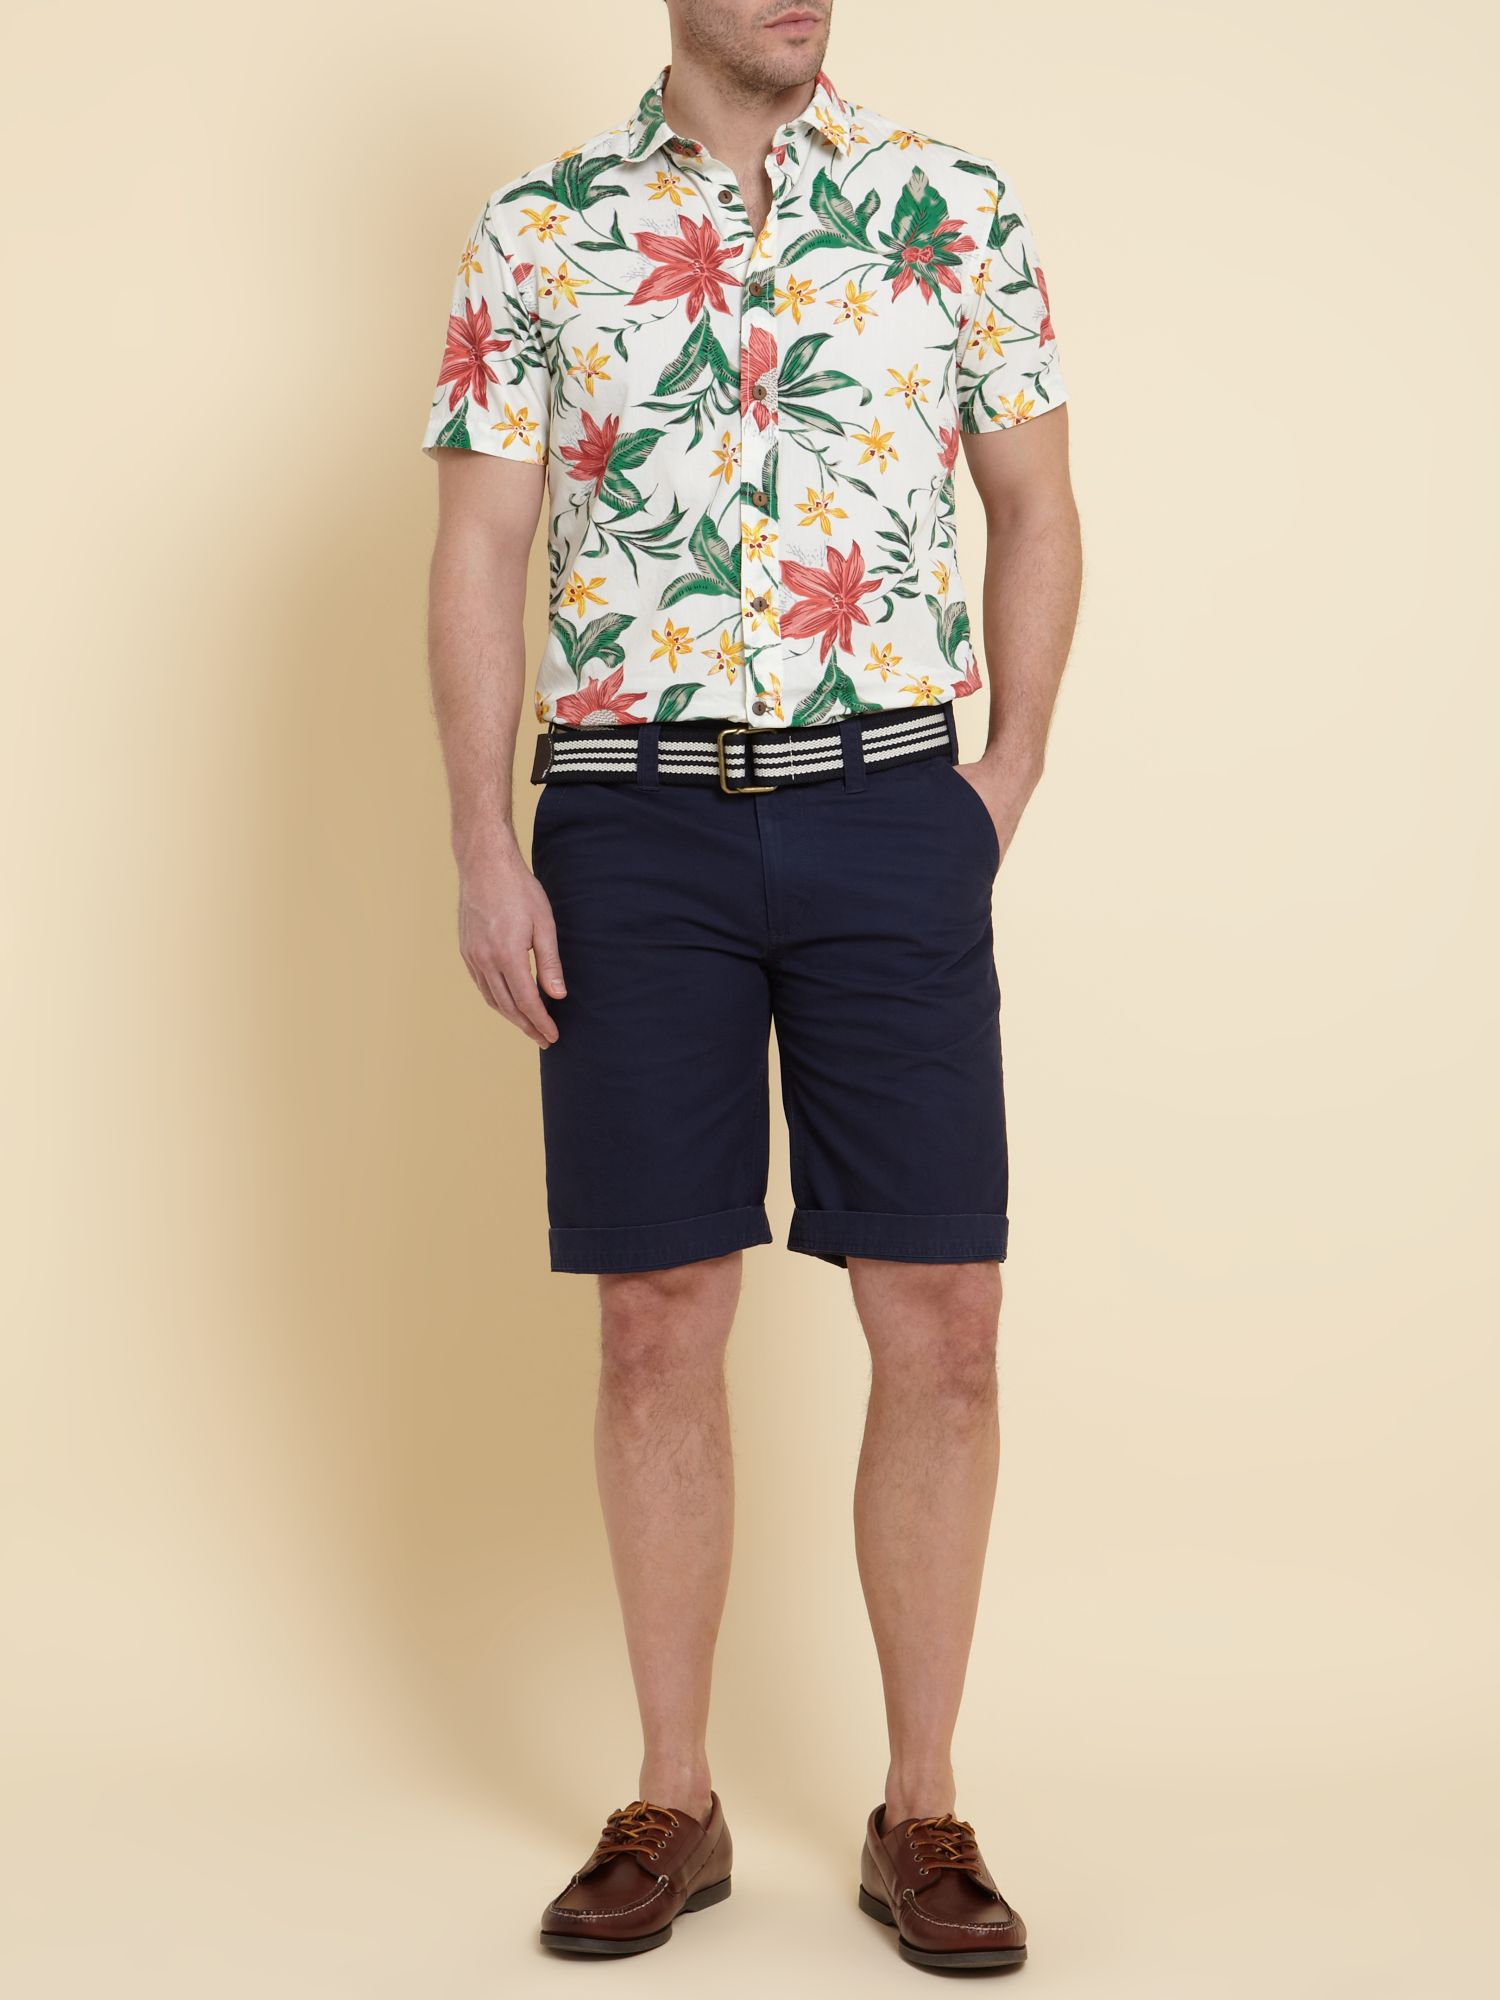 Short sleeved tropical printed shirt